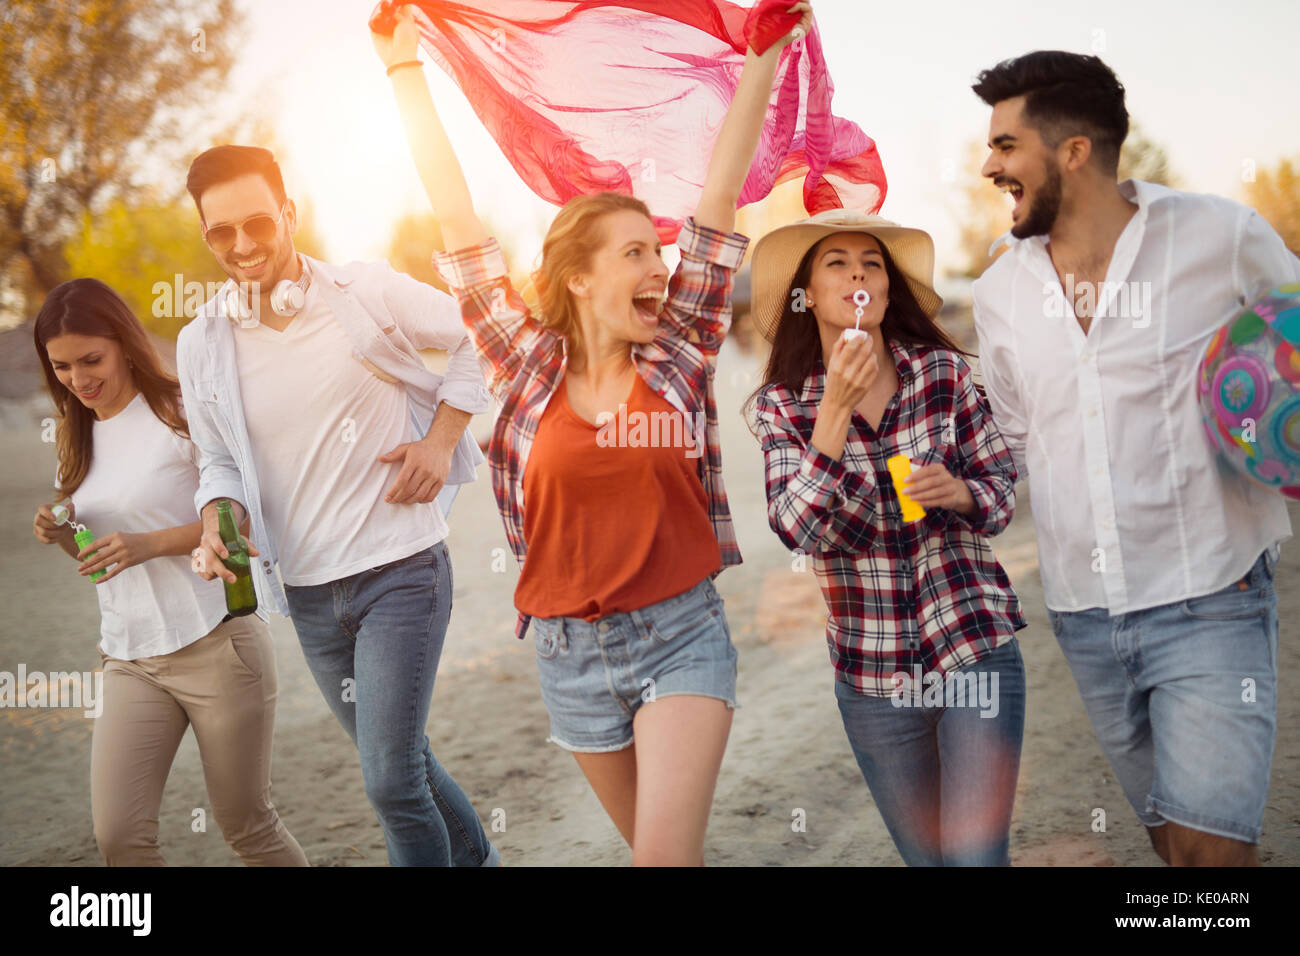 Group of happy young friends having great time on beach - Stock Image